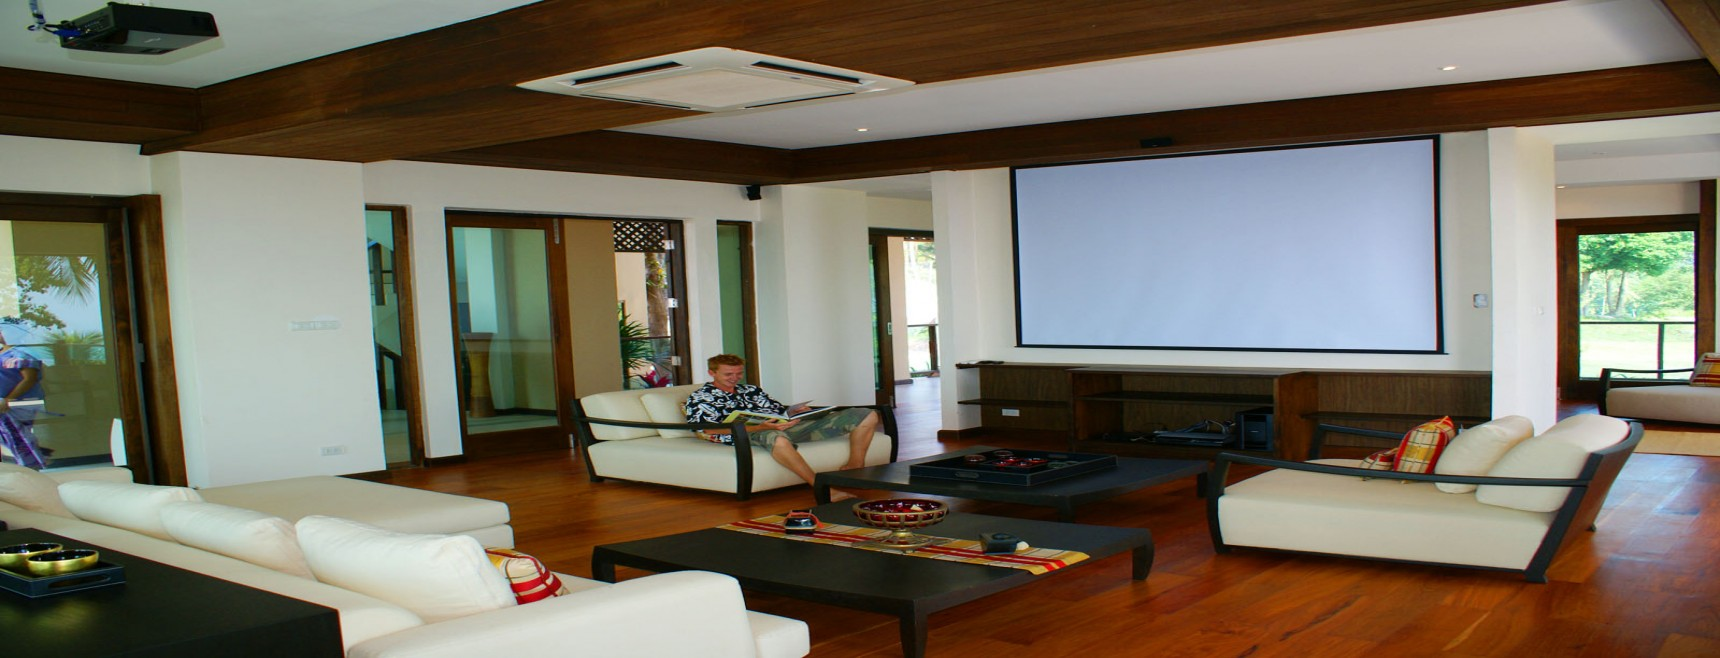 Luxury Sea View Villa For Sale Koh Samui by Thai Real com